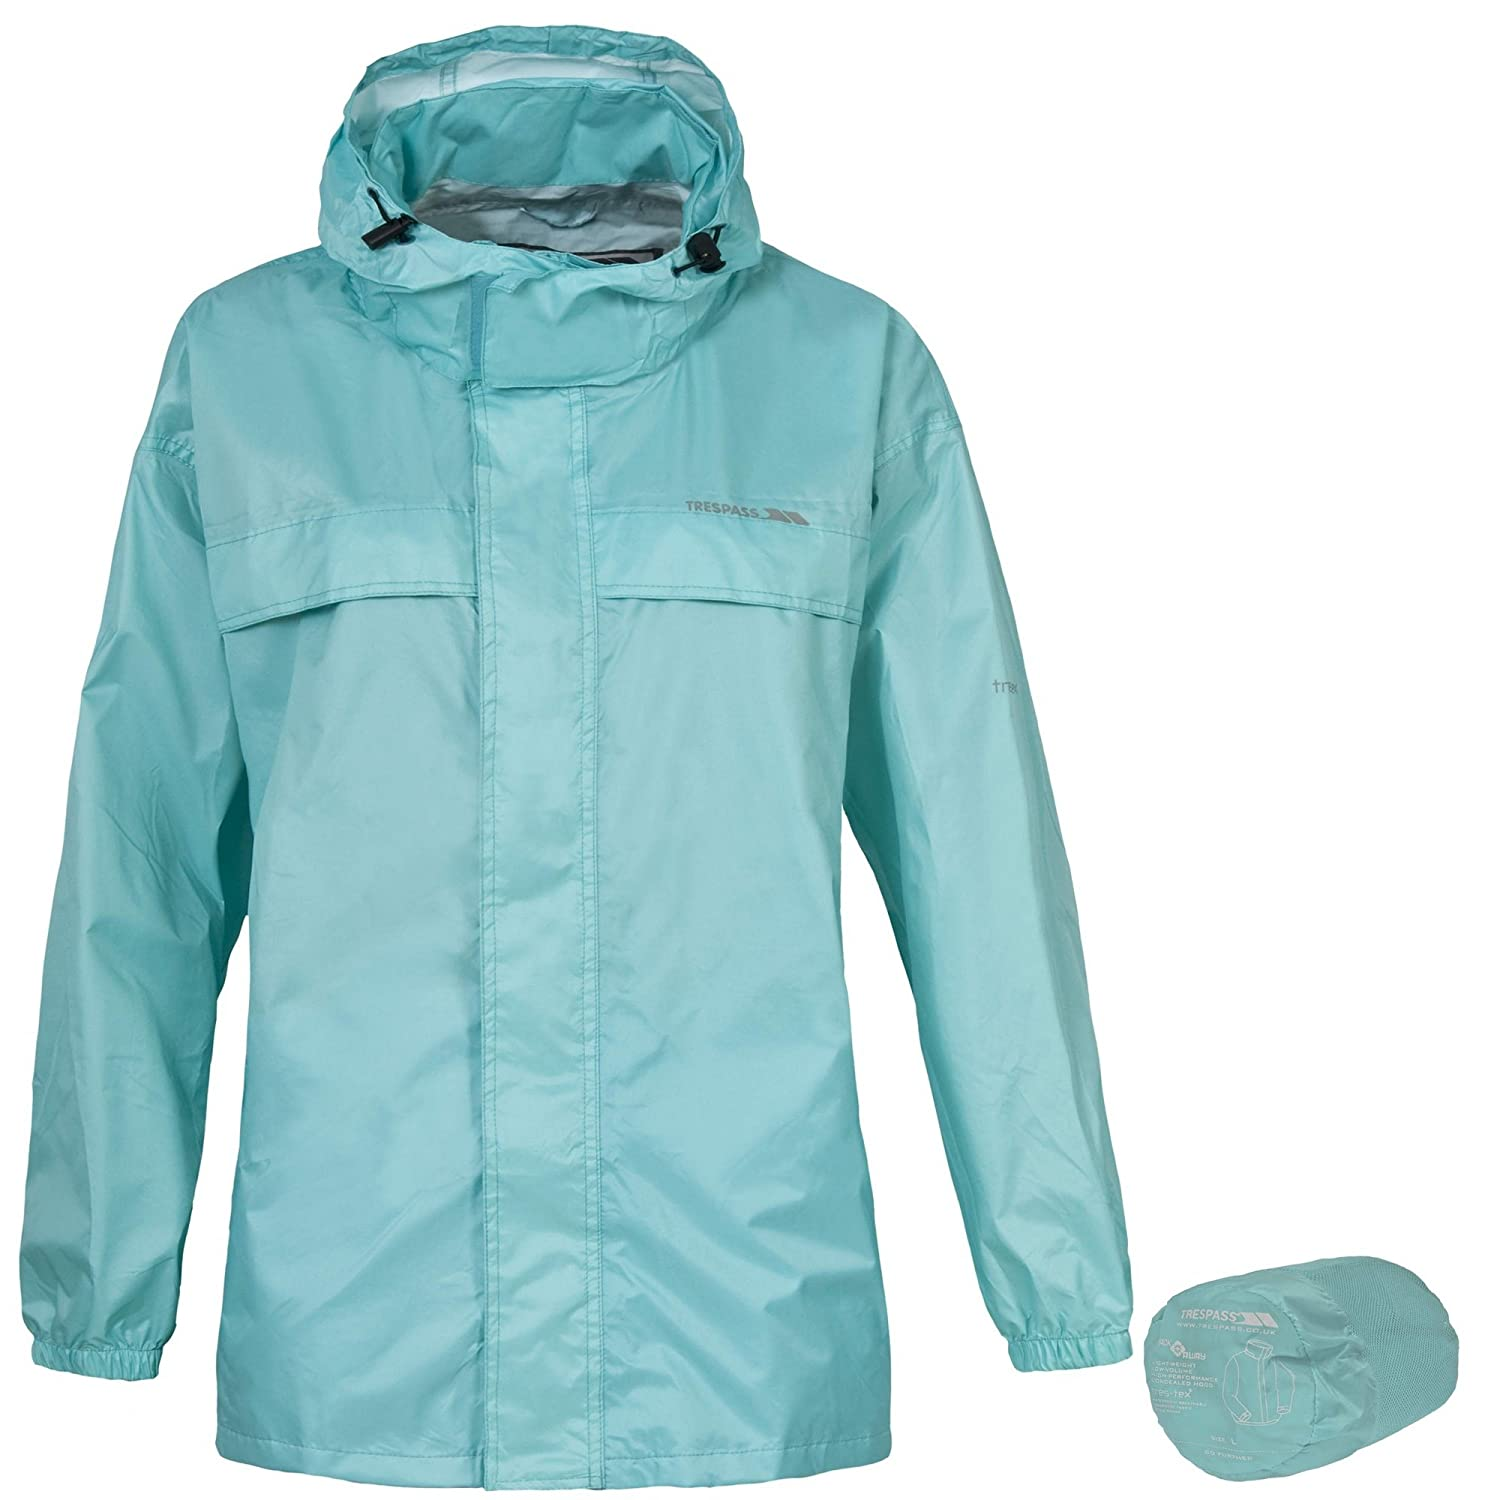 TALLA XL. Trespass Packa - Chaqueta unisex